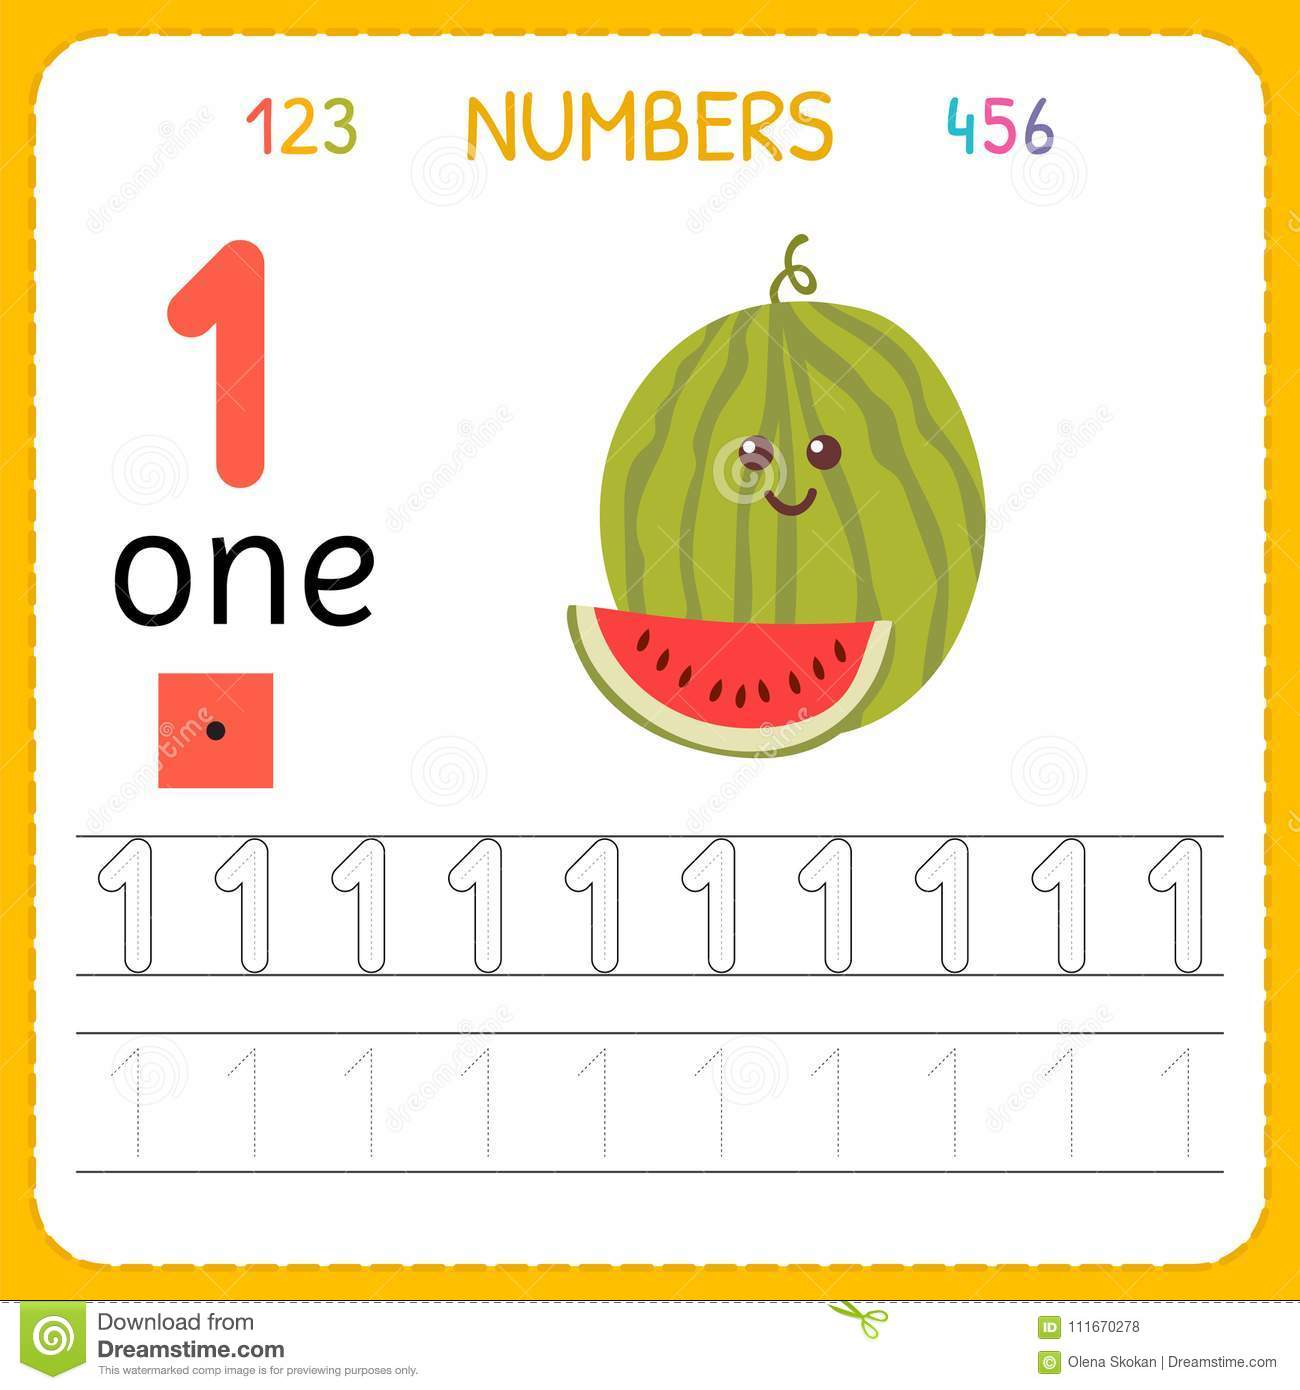 Numbers Tracing Worksheet For Preschool And Kindergarten Writing Number One Exercises For Kids